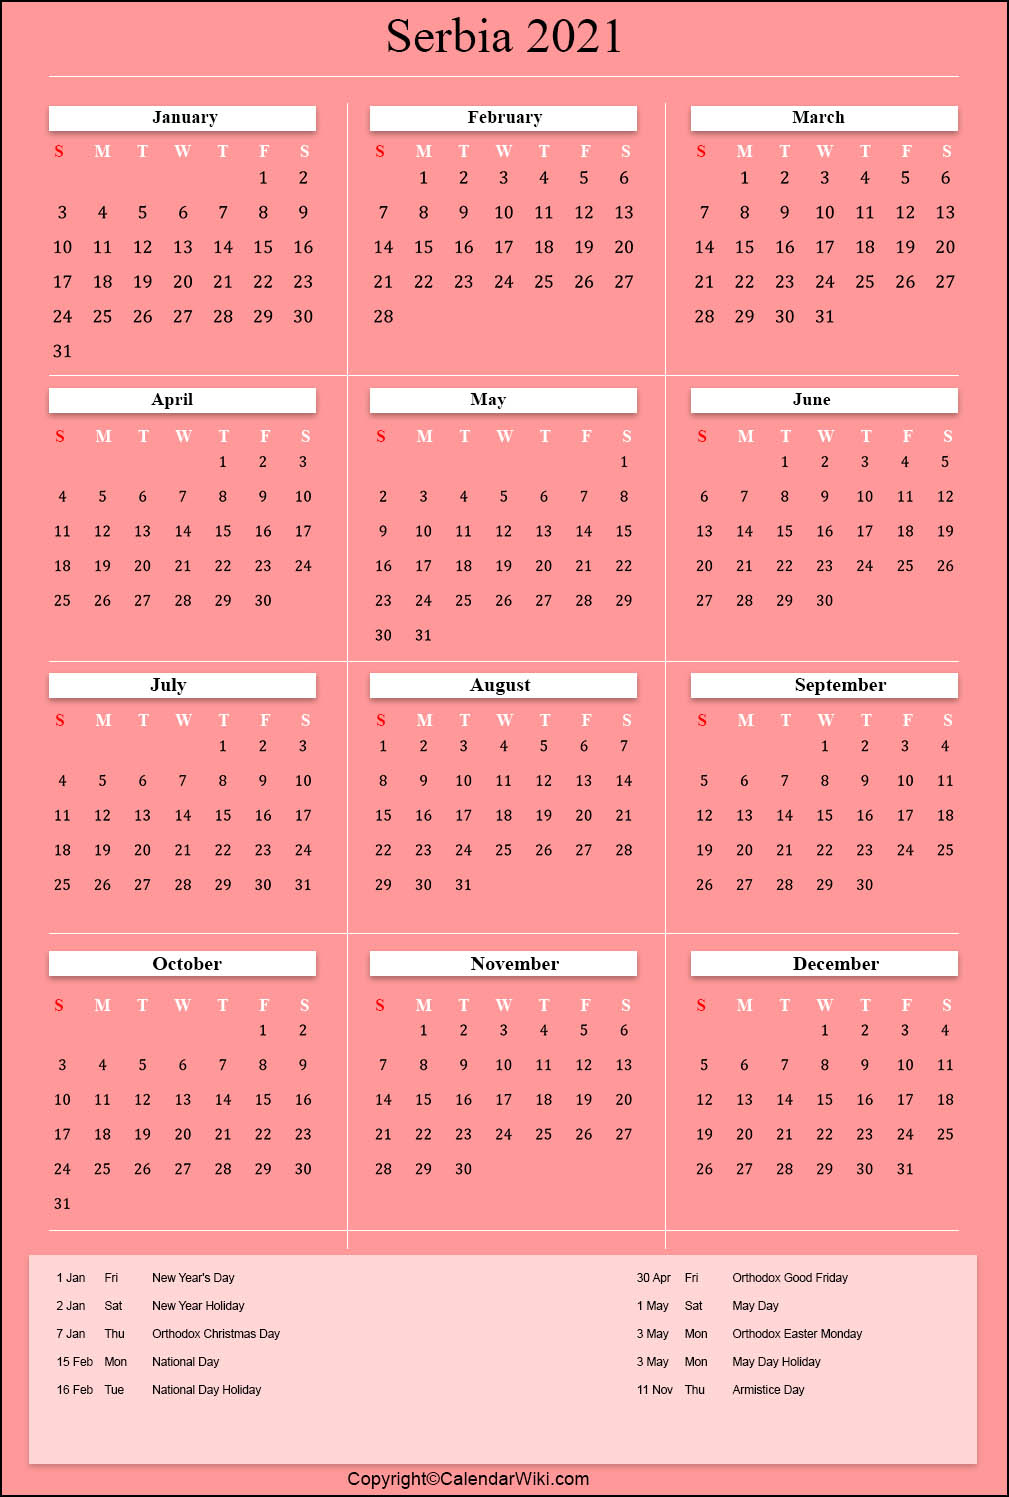 Printable Serbia Calendar 2021 with Holidays [Public Holidays]